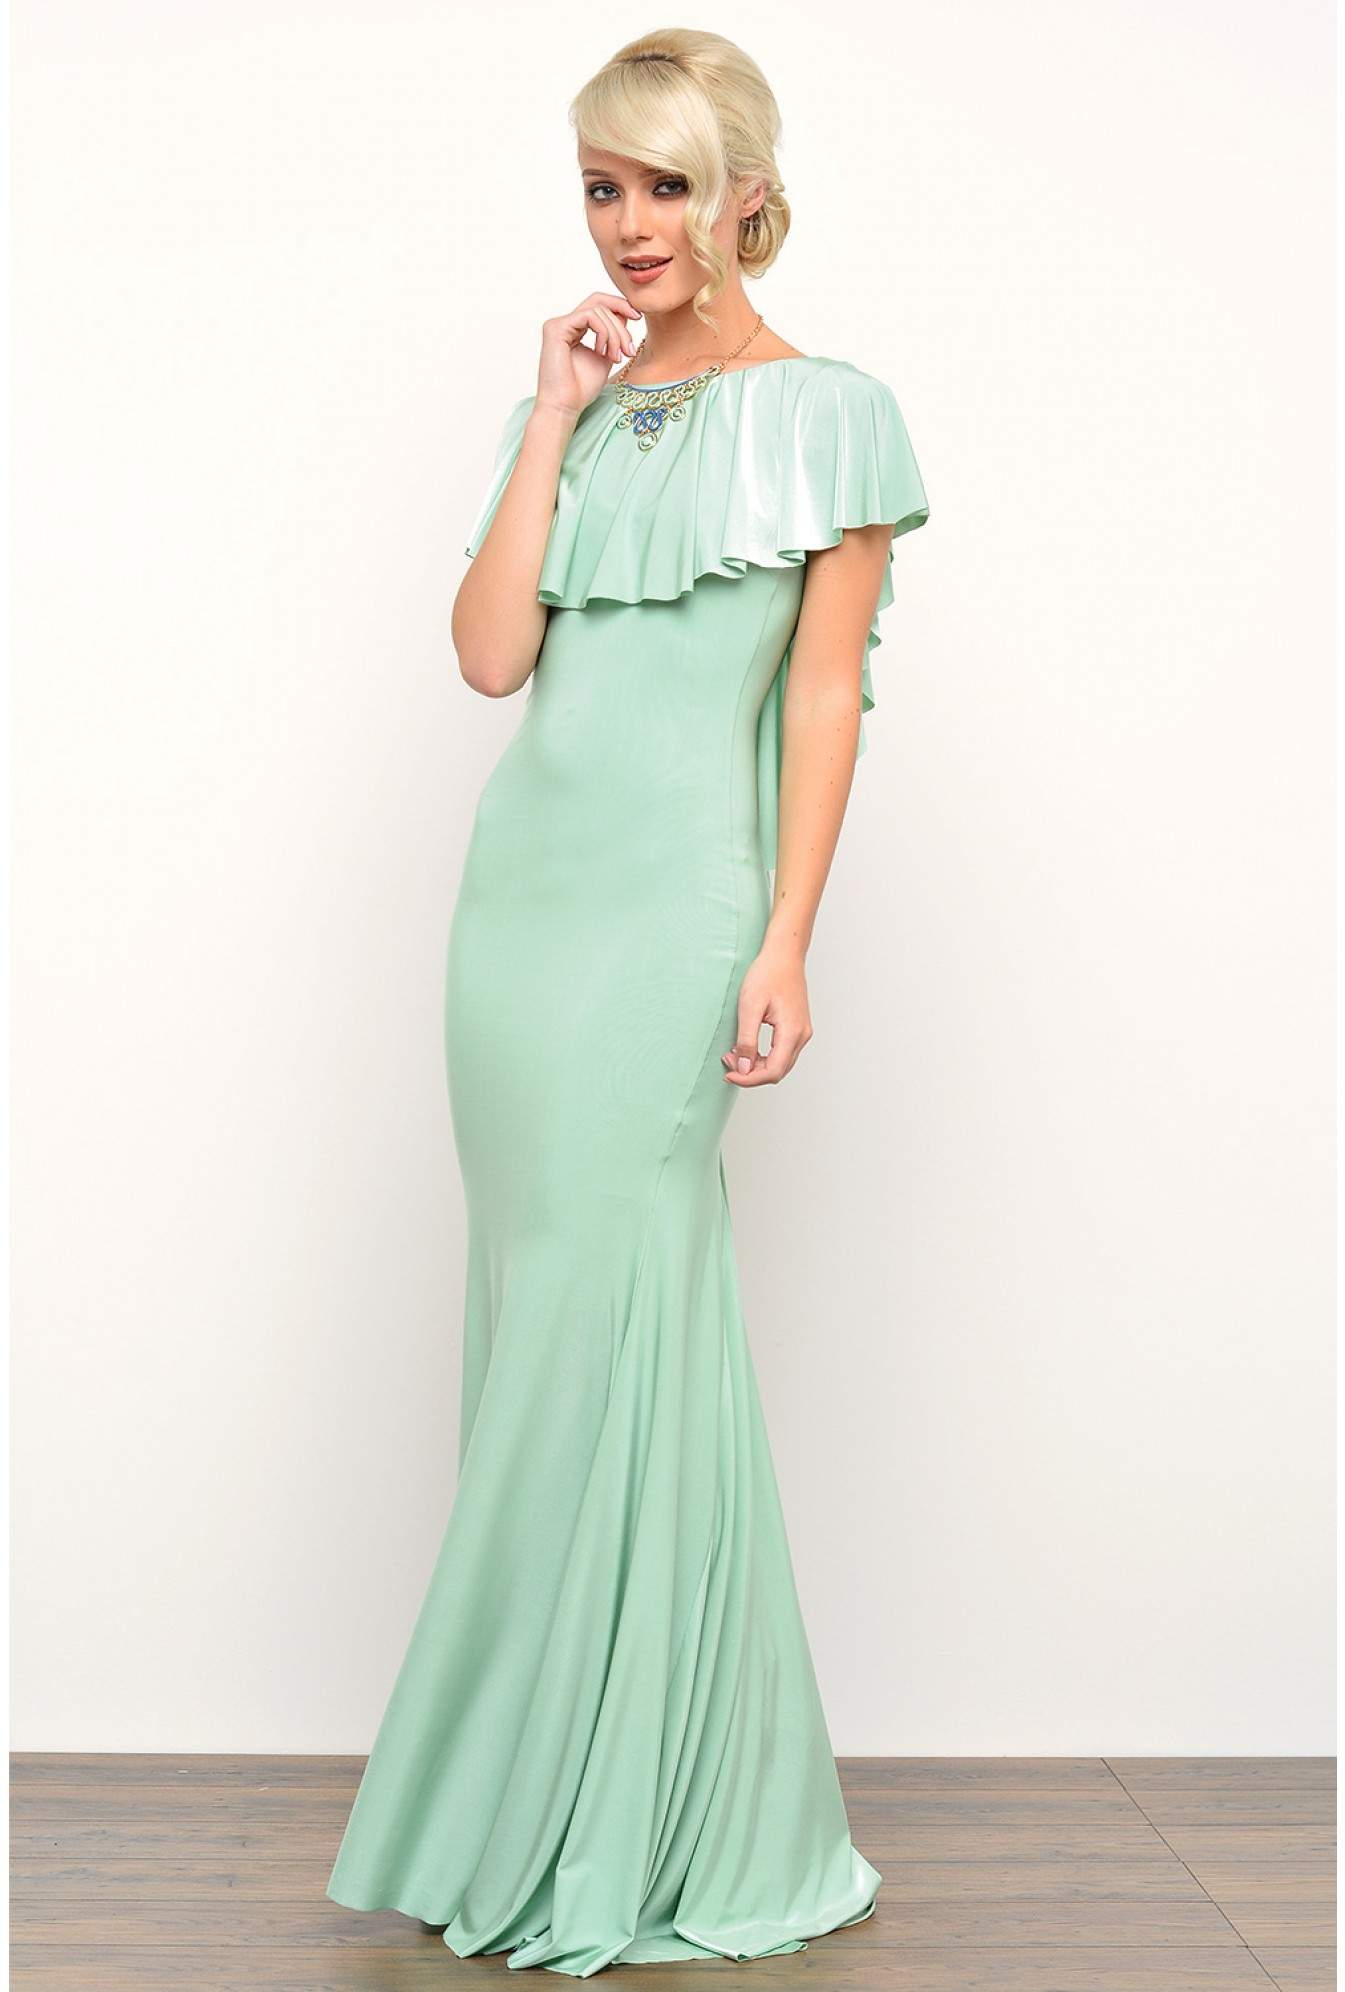 b53bf4d4e1 city goddess Paula Open Back Ruffle Maxi Dress in Mint | iCLOTHING